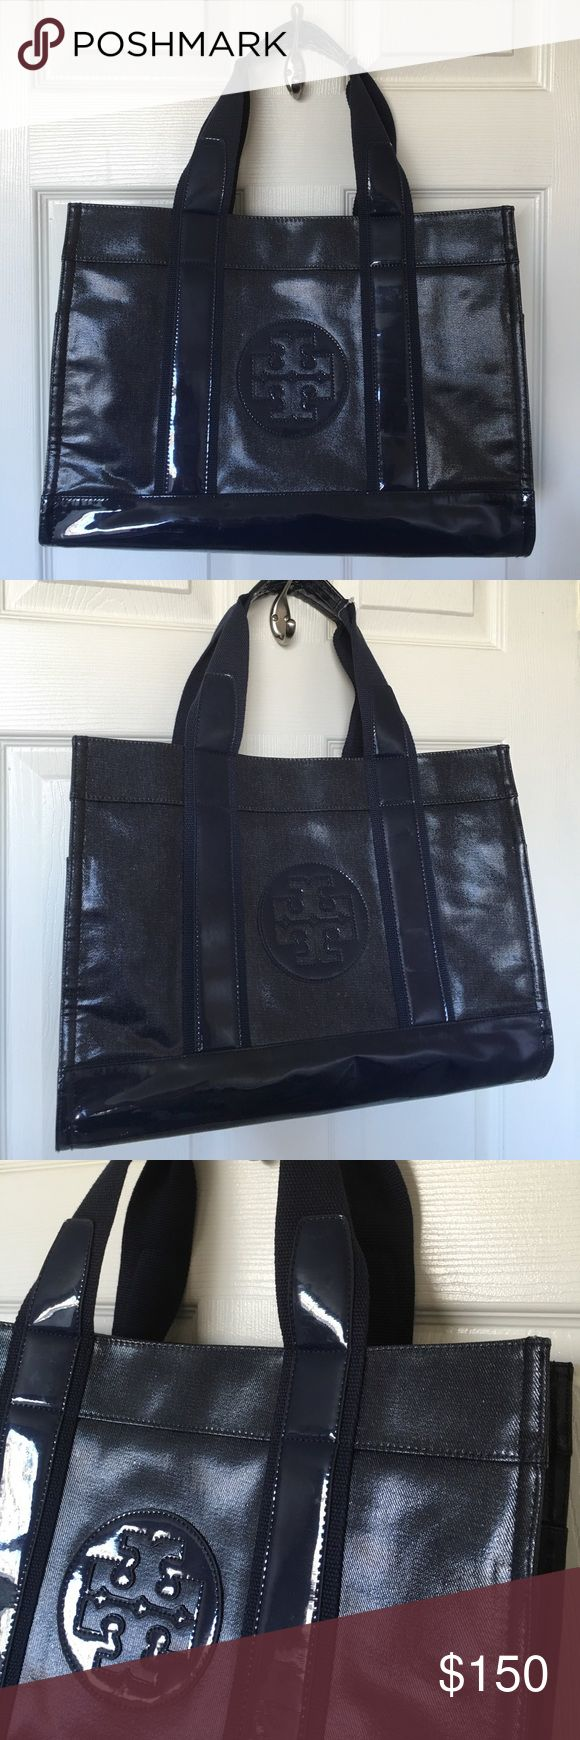 """TORY BURCH Navy Tote Bag Beautiful, Navy, 100% Authentic Tory Burch Patent Tote! Never used! Large bag, Fully lined with beautiful floral print, two inner zip pockets, two outer side pockets, 7 1/2"""" drop double straps. White scuffs on and around the bottom and back of bag from being stored in closet. Some scratches around bag on solid blue patent parts of bag. Approx 15 3/4"""" X 11"""" X 7"""". Tory Burch Bags Totes"""